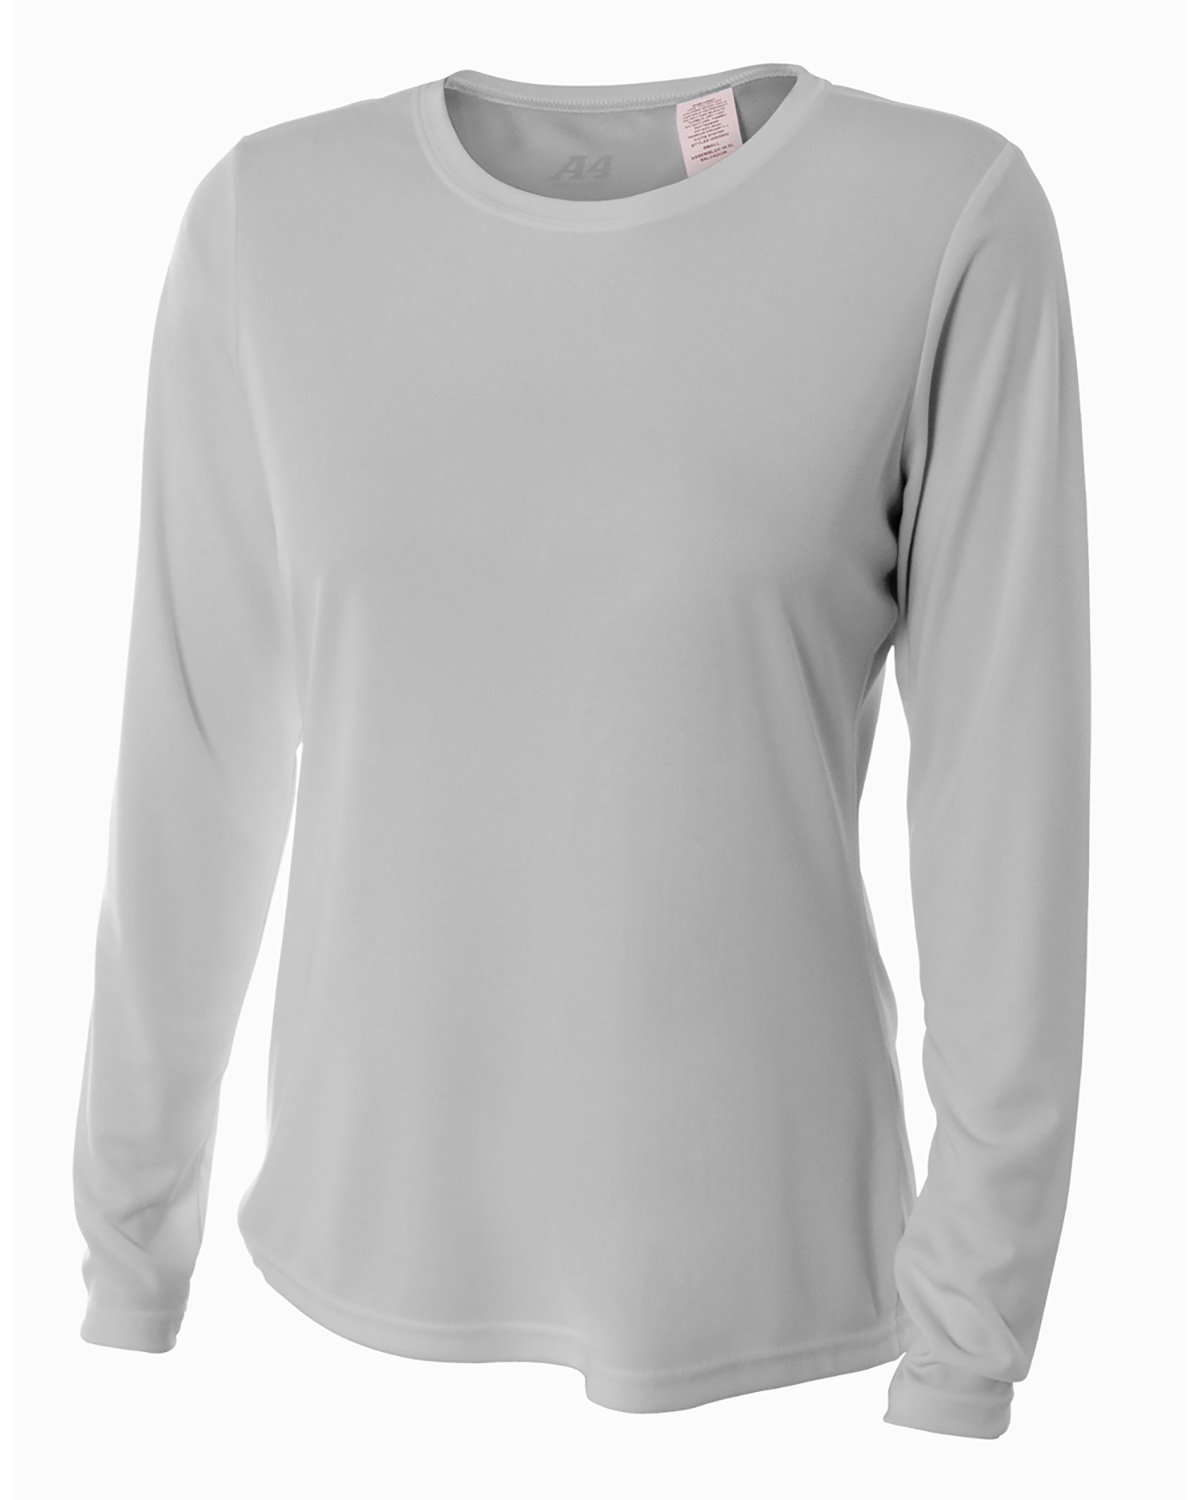 A4 Ladies' Long Sleeve Cooling Performance Crew Shirt SILVER